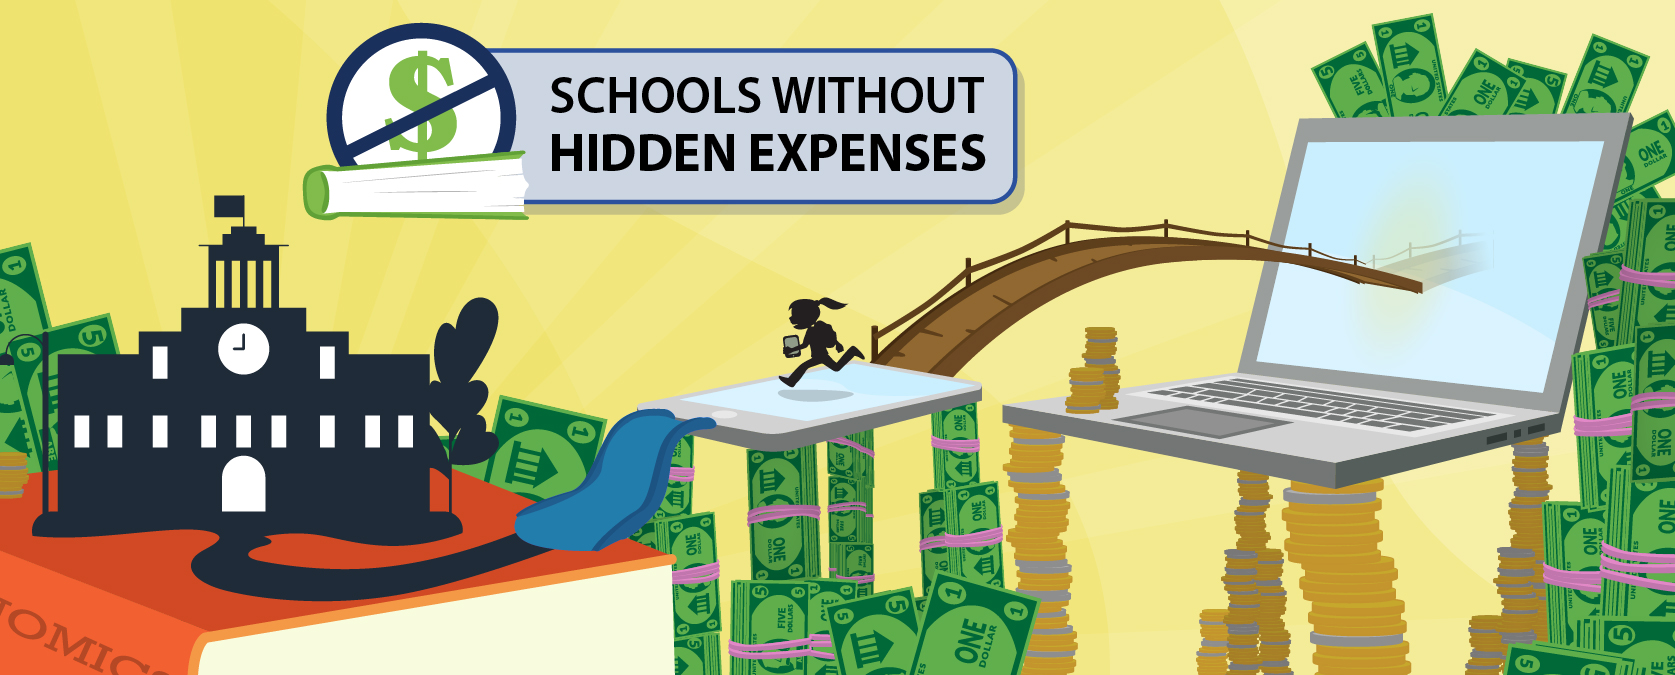 Schools without hidden expenses